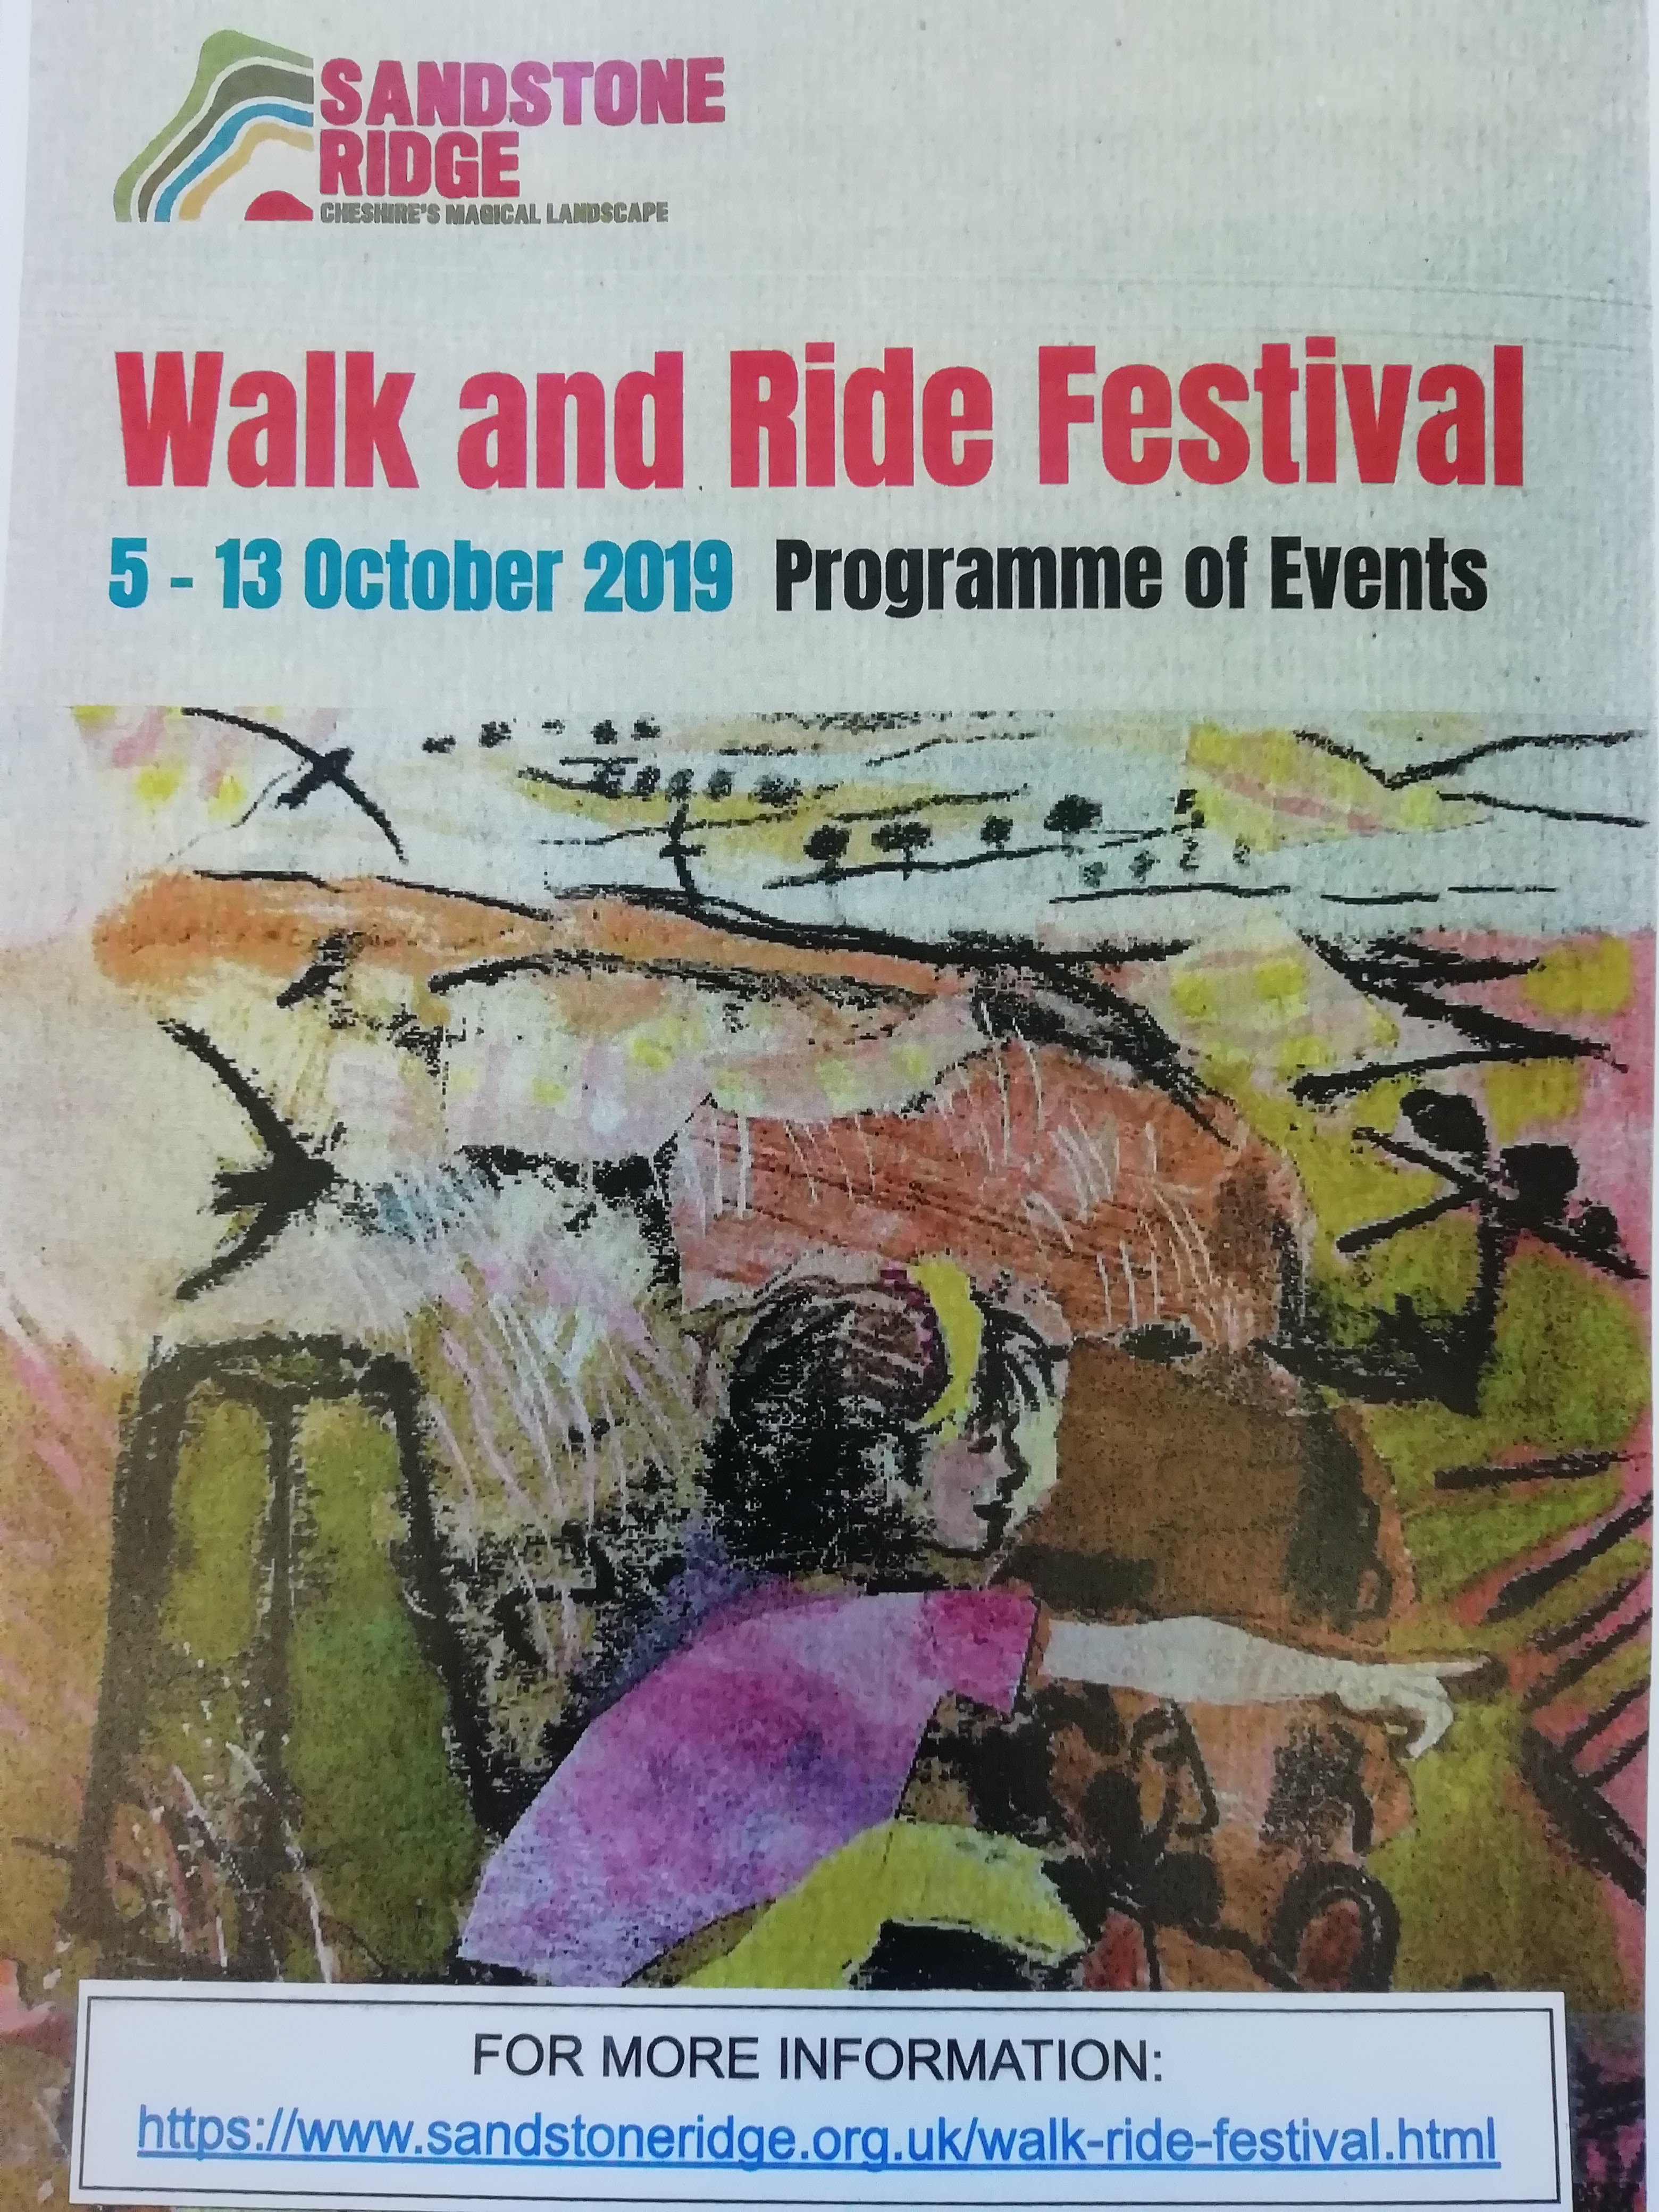 Walk and Ride Festival – 5-13 October 2019